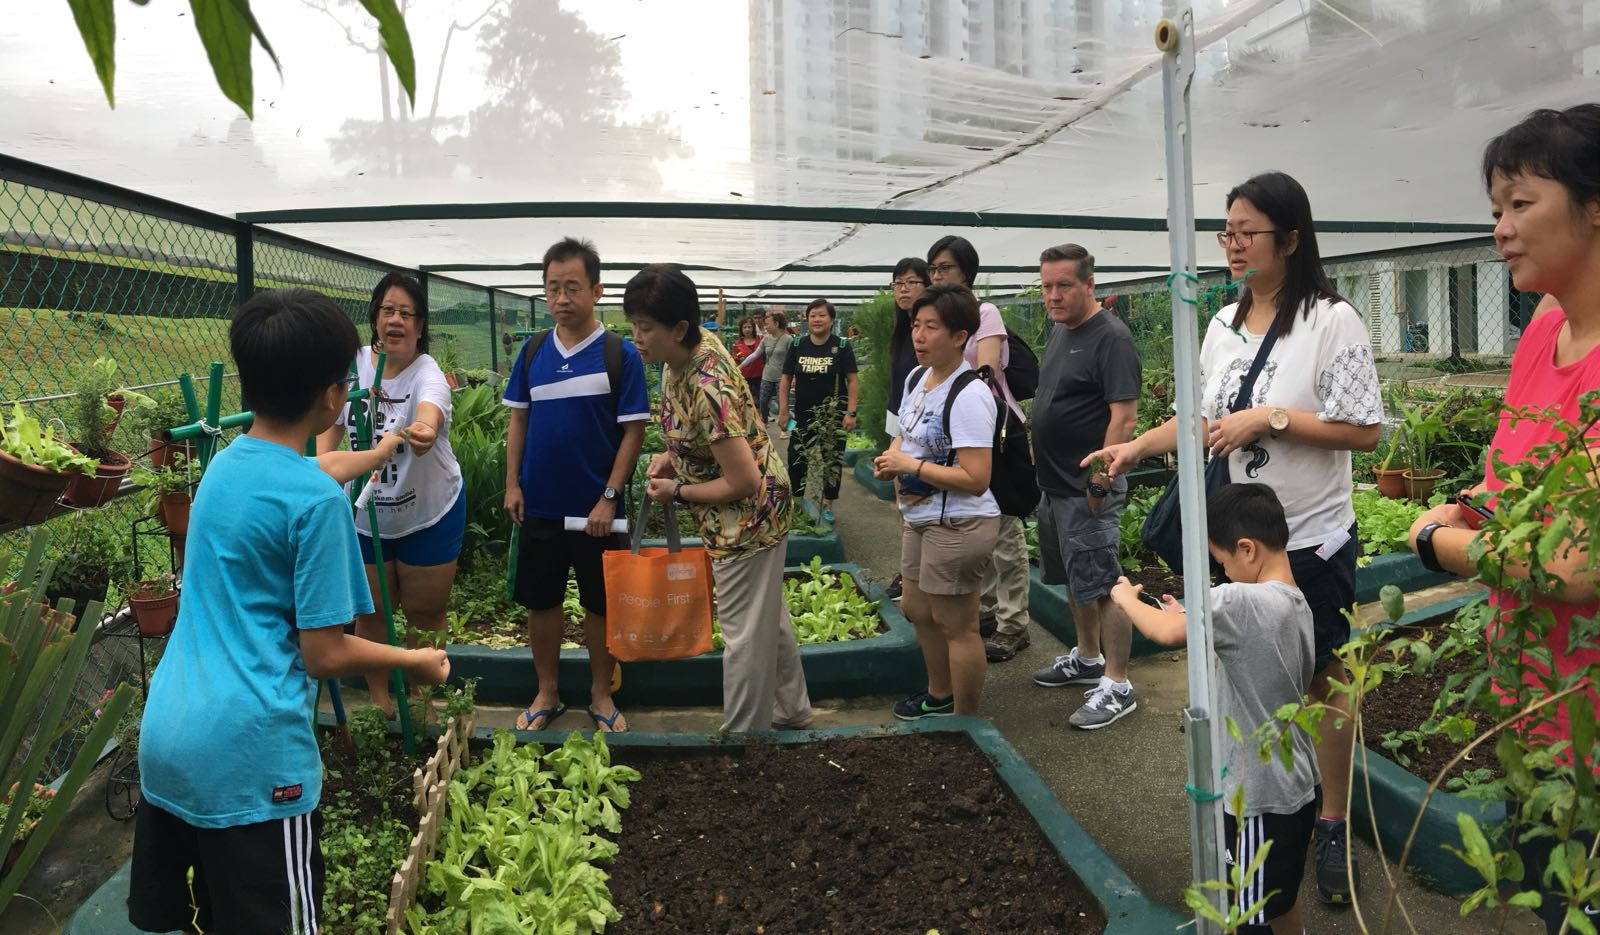 Discover the Community Gardens in your Neighbourhood